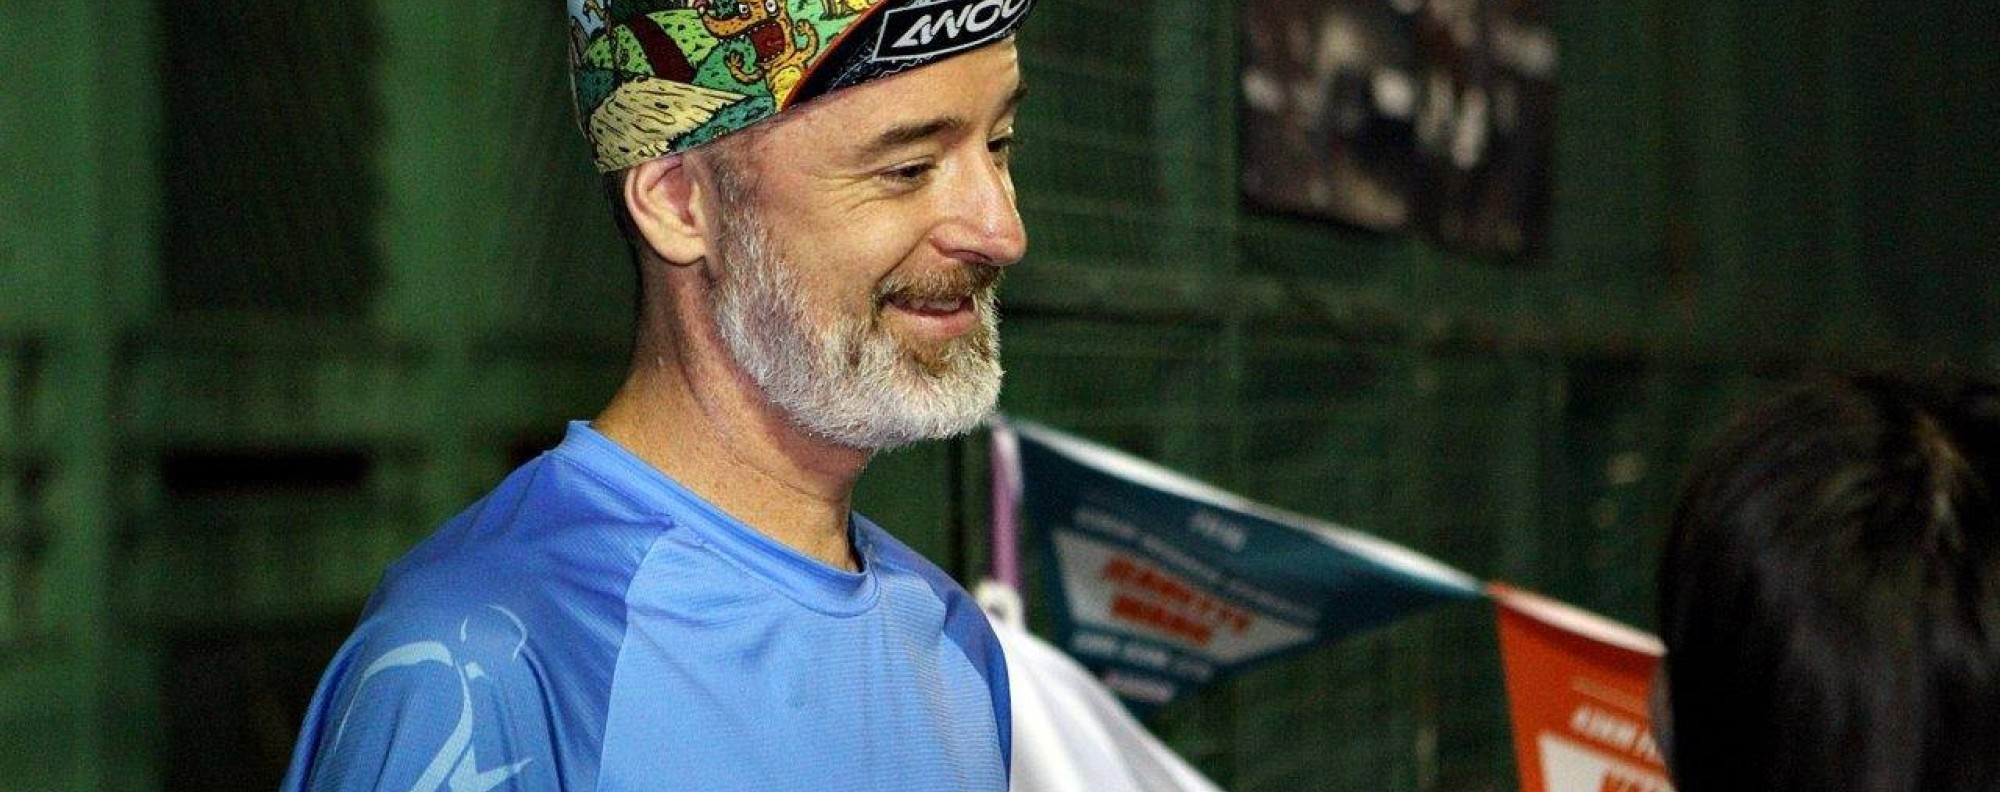 Nic Tinworth was more than just a race organiser. He was the centre of the trail running community. Photo: Handout